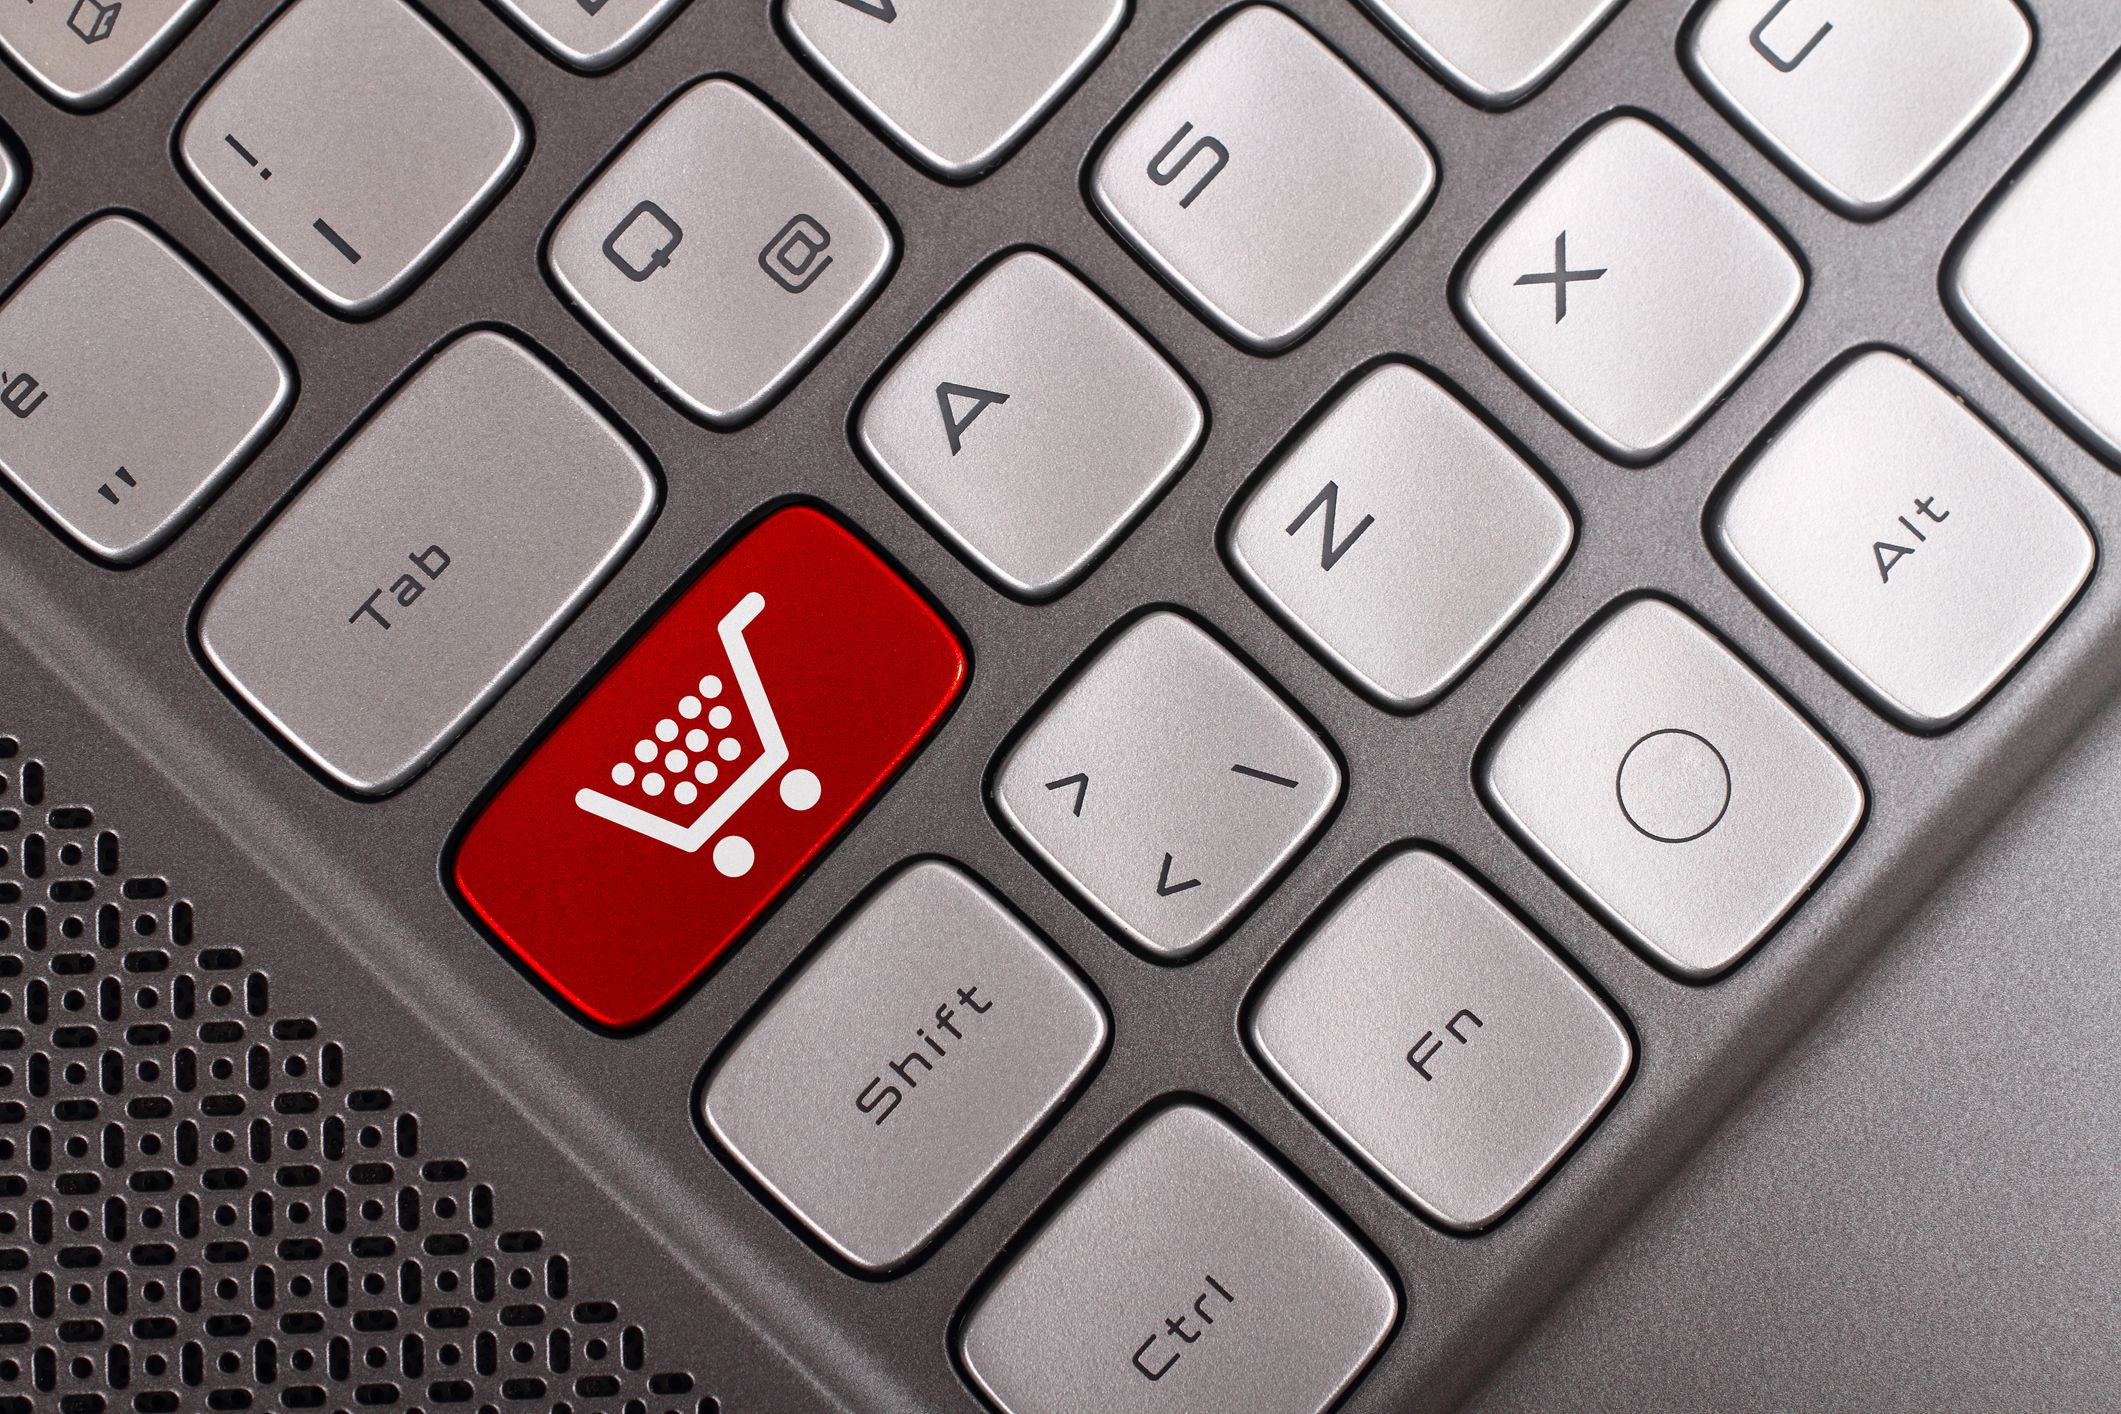 disadvantage traditional commerce E-commerce or electronics commerce is a methodology of modern business which addresses the need of business organizations, vendors and customers to reduce cost and improve the quality of goods and services while increasing the speed of delivery.